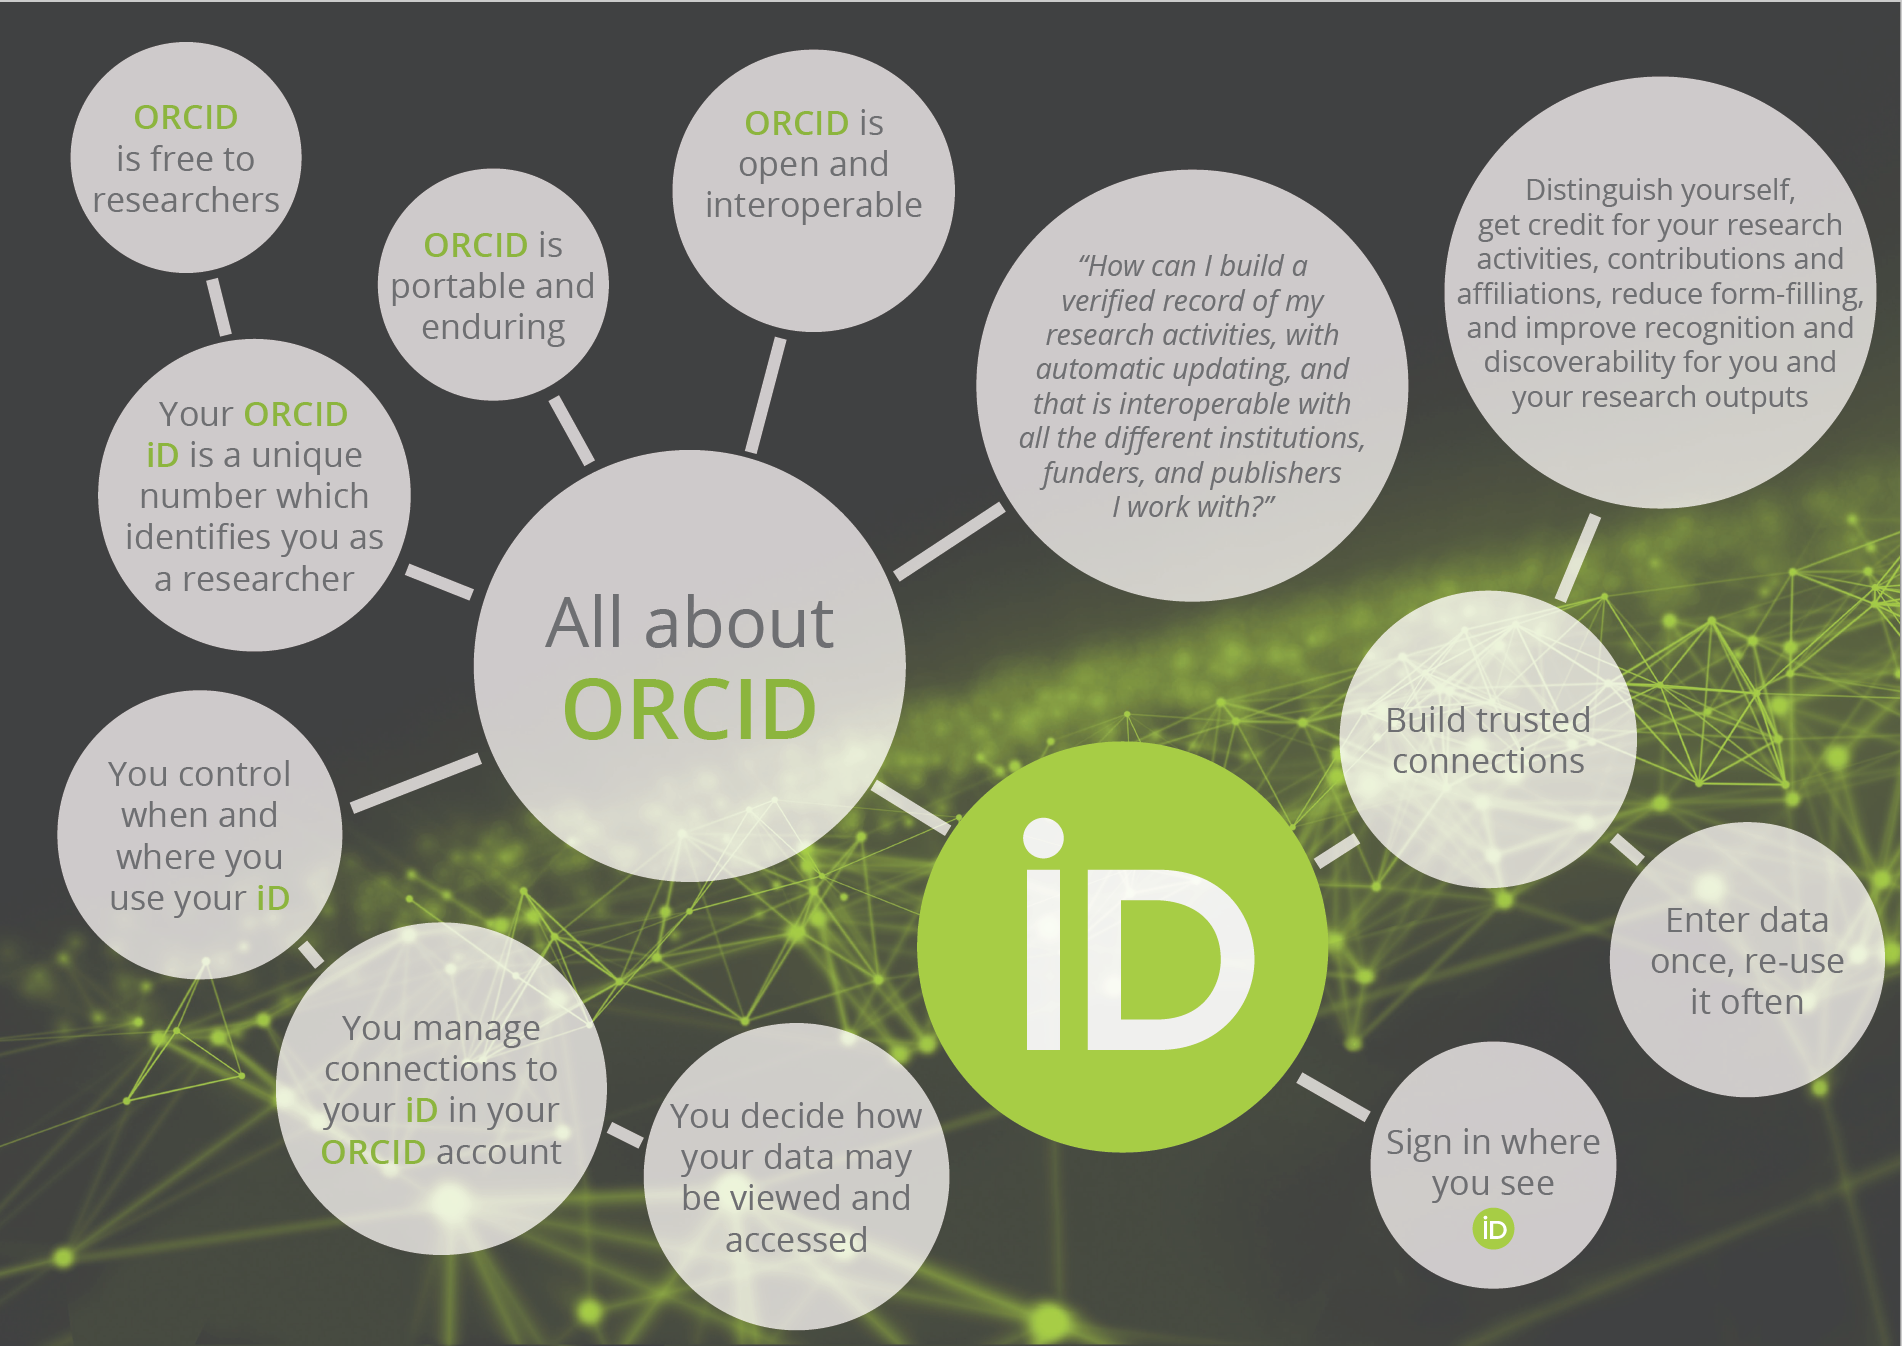 a concise summary of how ORCID benefits